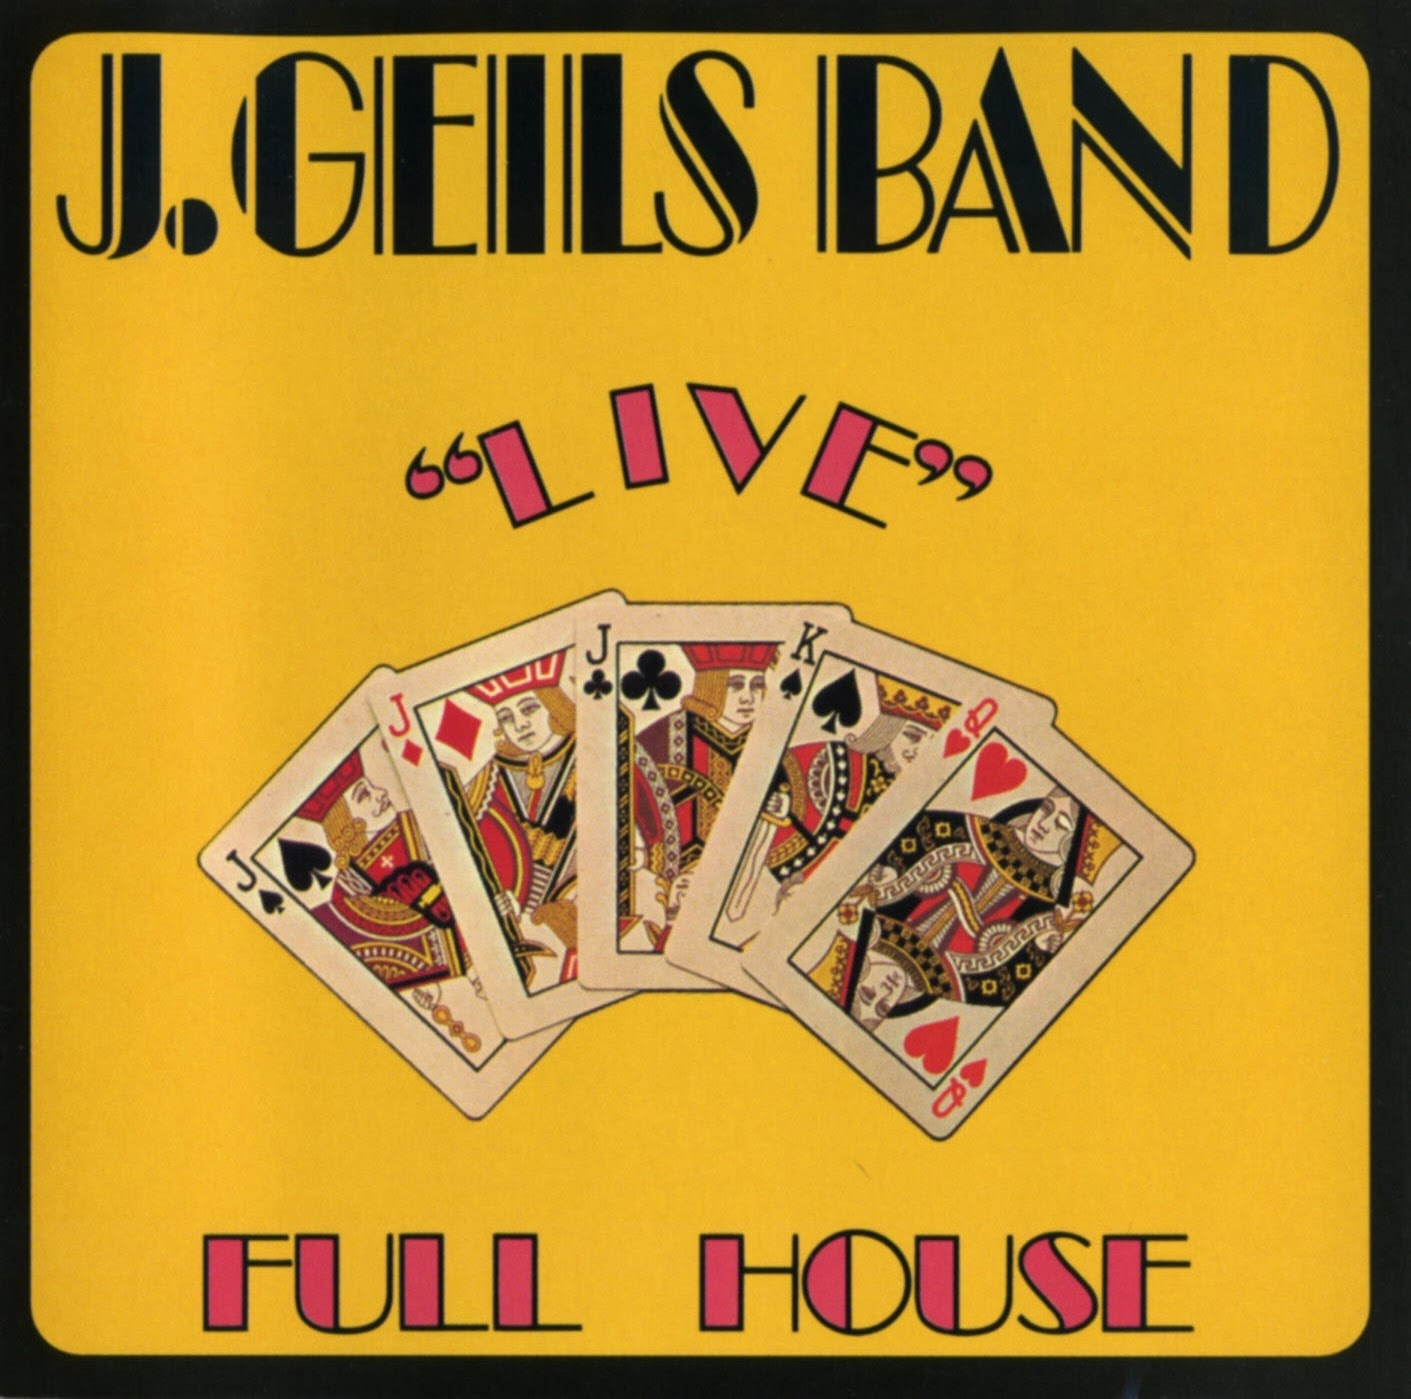 J Giles Band Albums : deep blues j geils band live full house greatest live album of all time or first sign of ~ Vivirlamusica.com Haus und Dekorationen